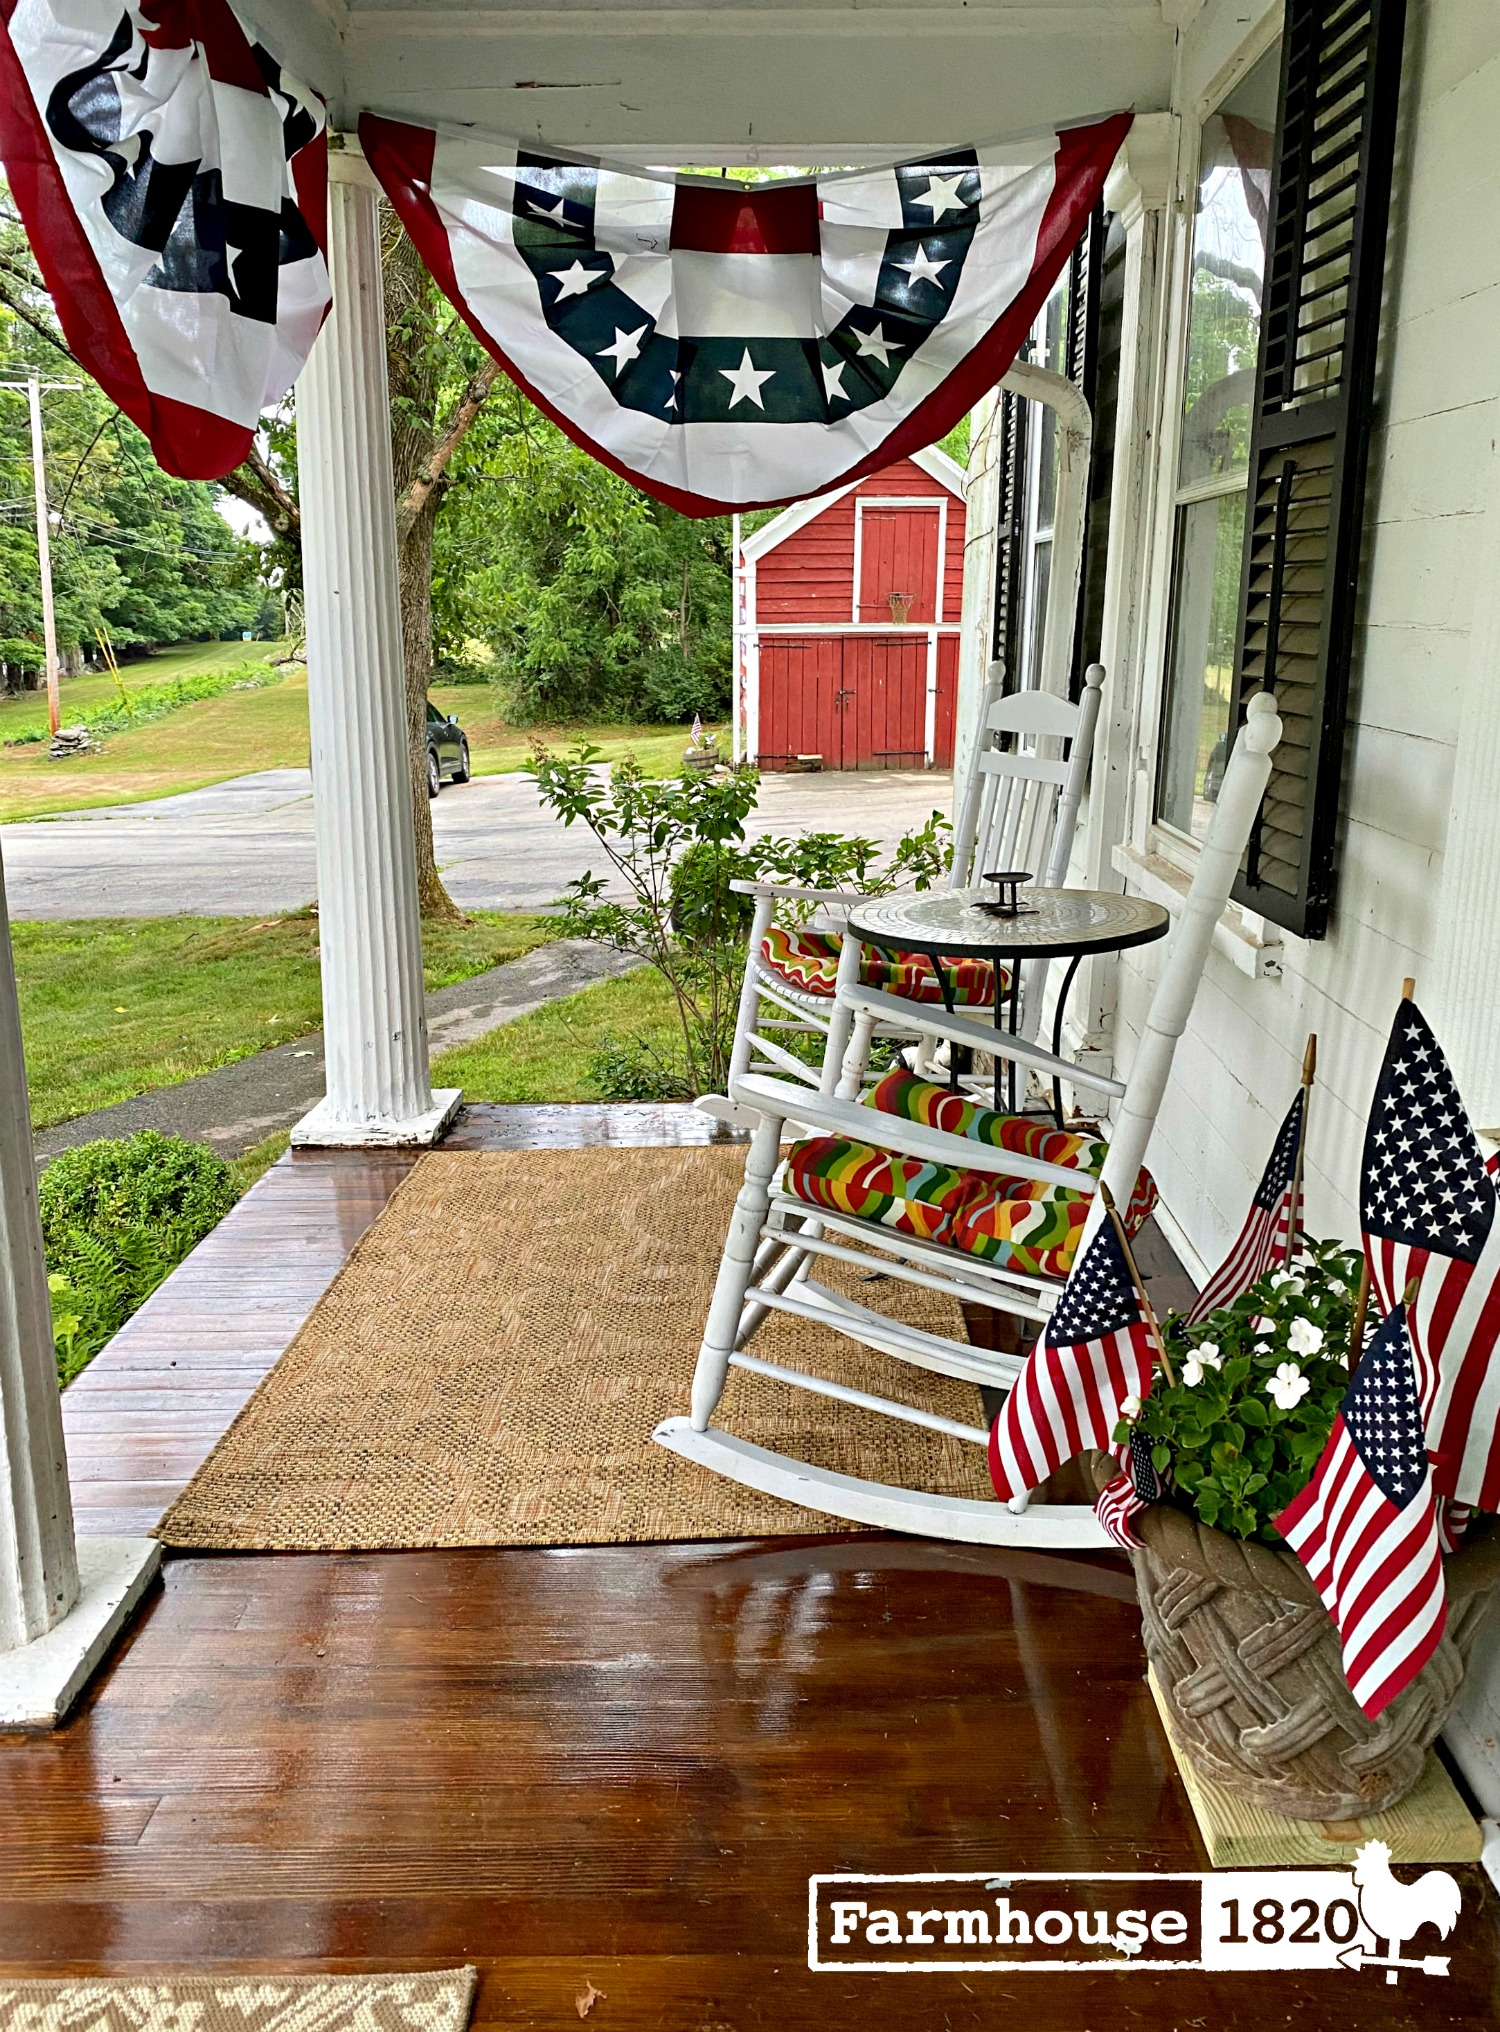 Tour this old farmhouse with charming front porch and big red barn